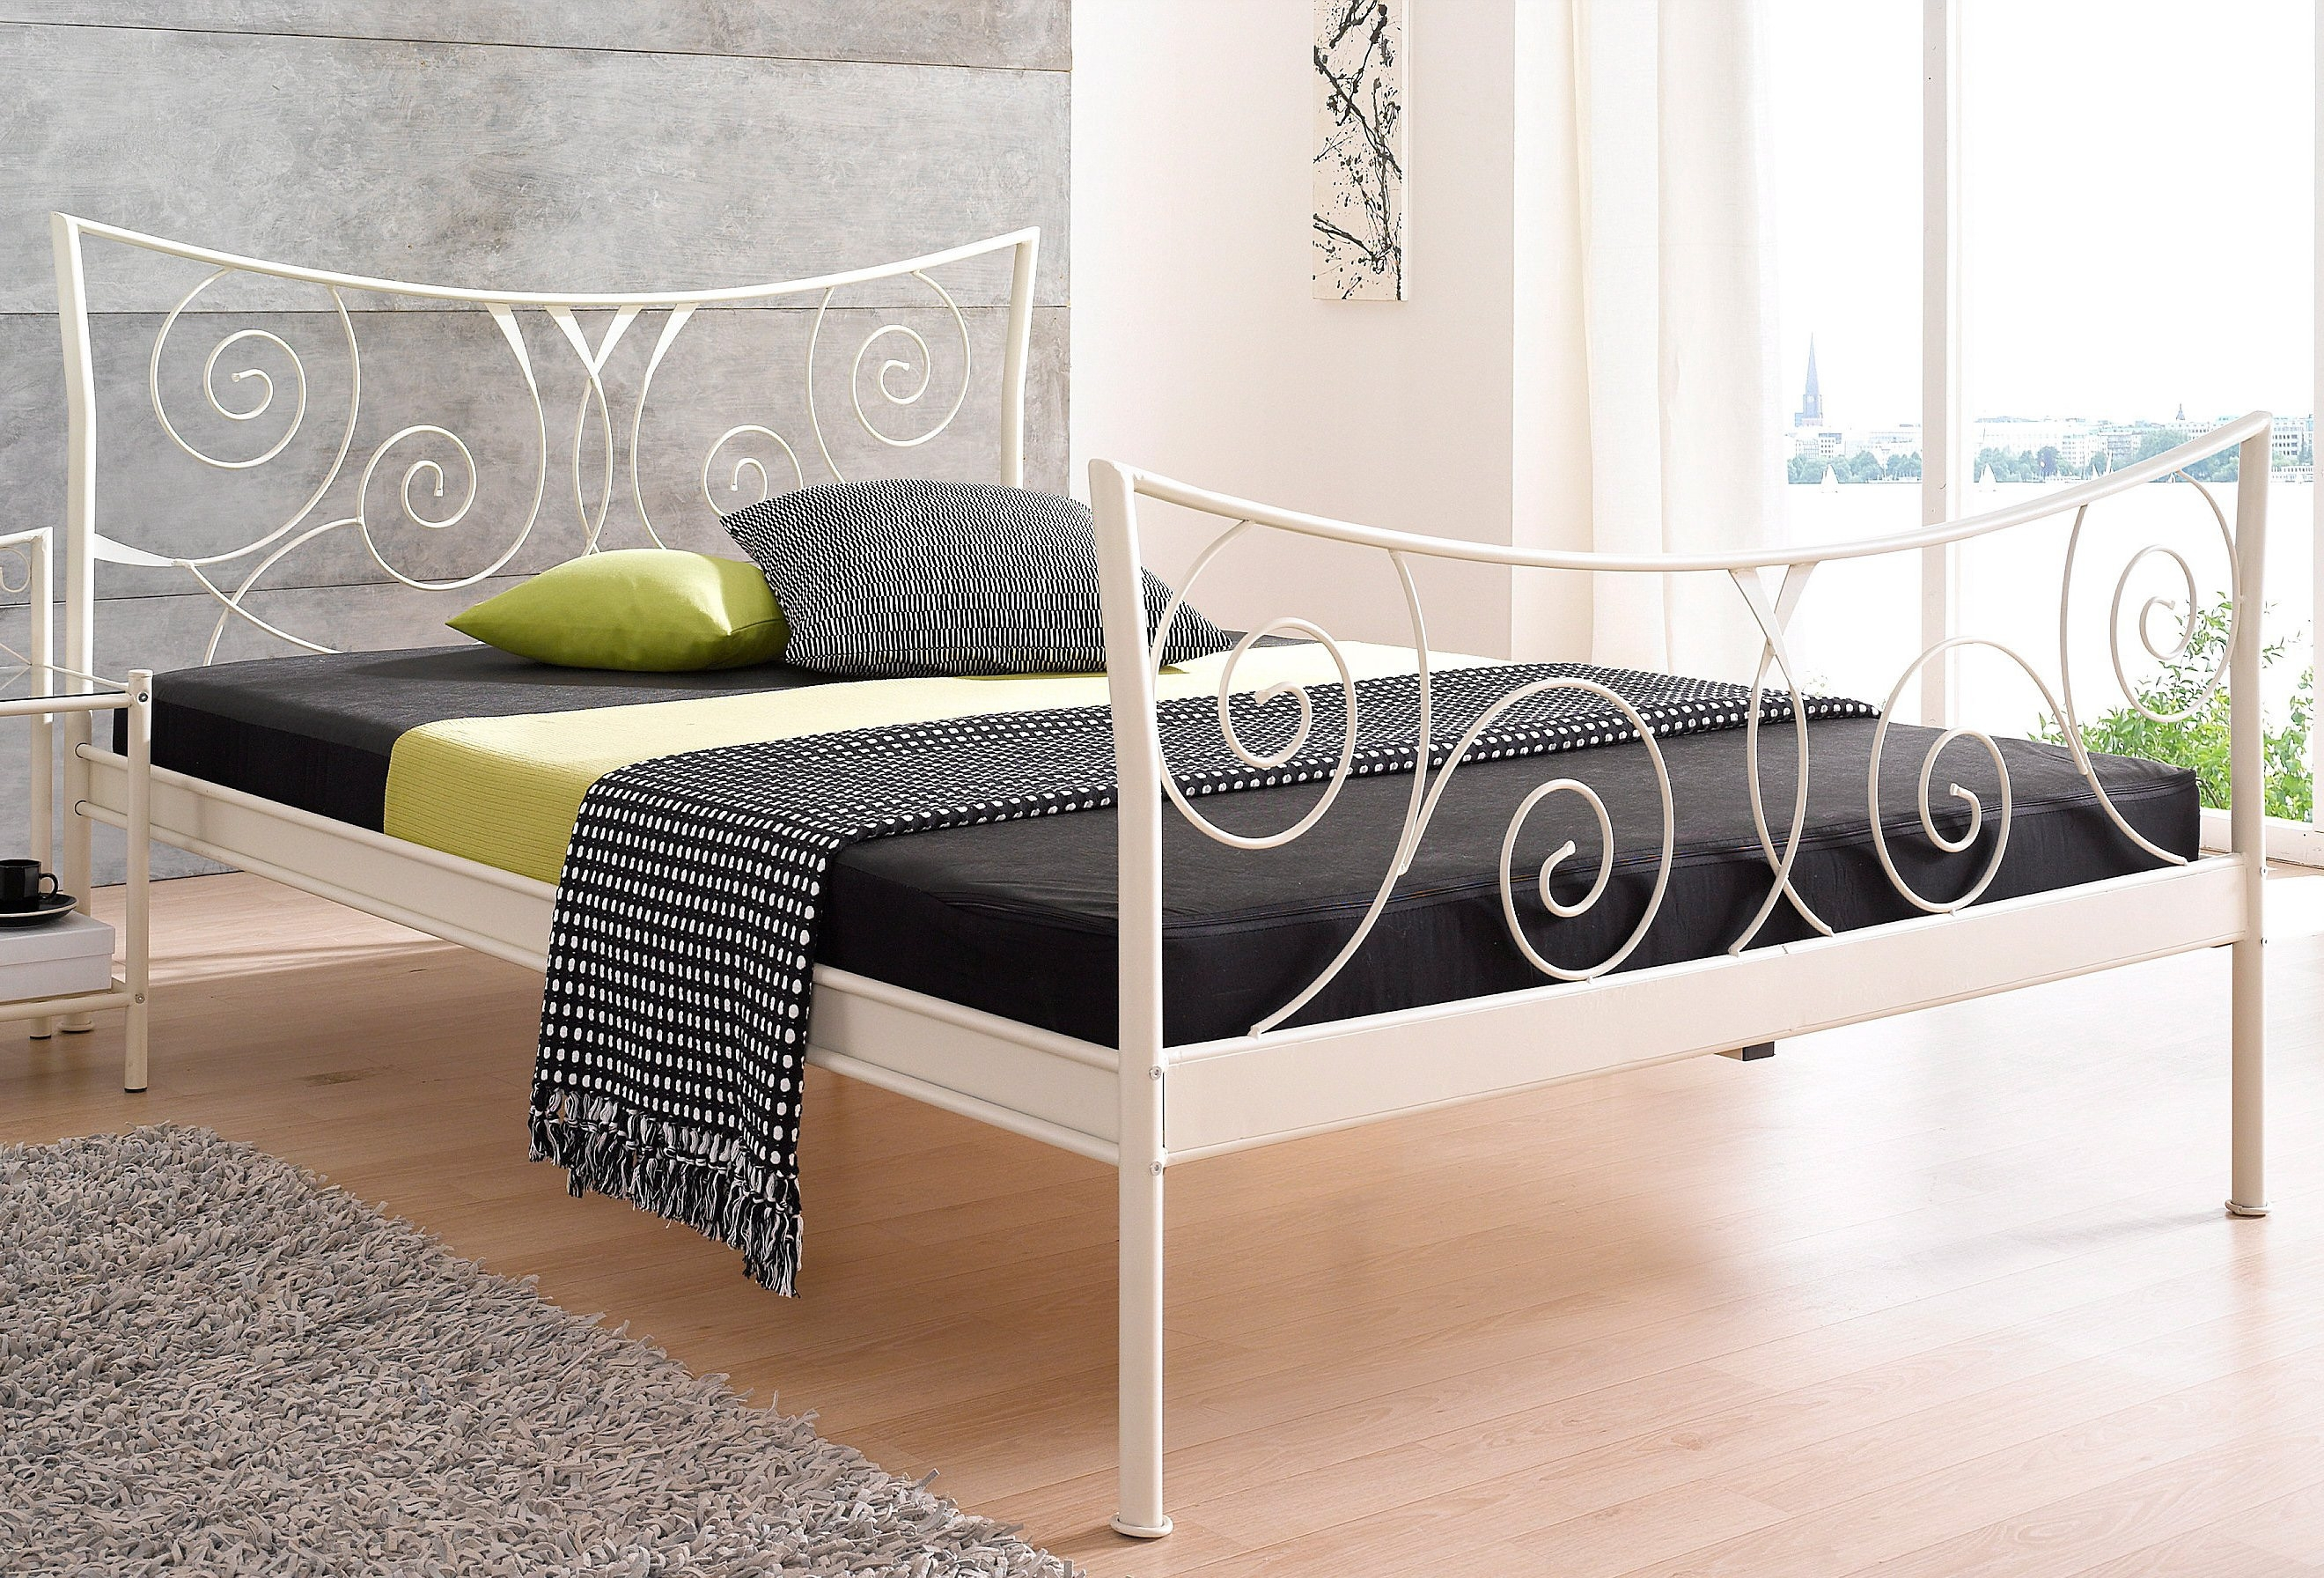 metalen bed online bij otto. Black Bedroom Furniture Sets. Home Design Ideas